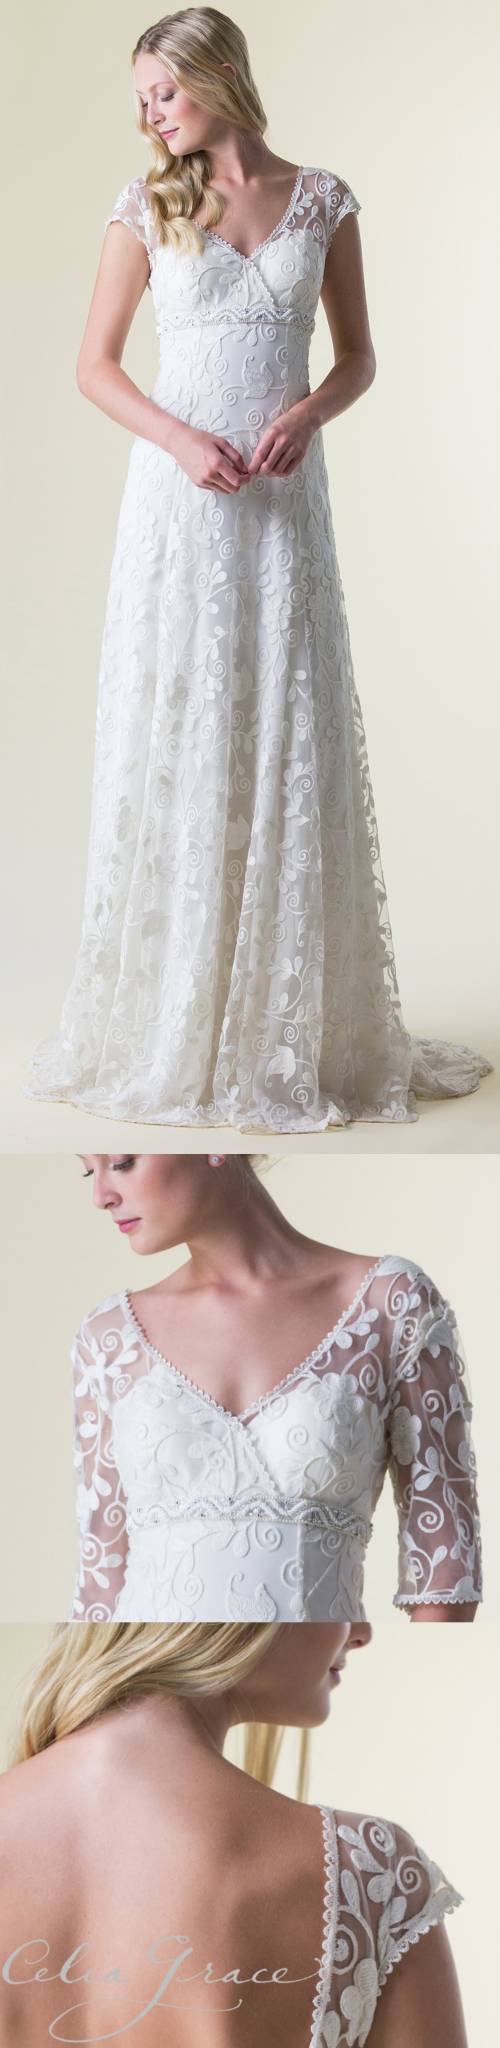 A wedding dress with illusion lace and sleeve options celia